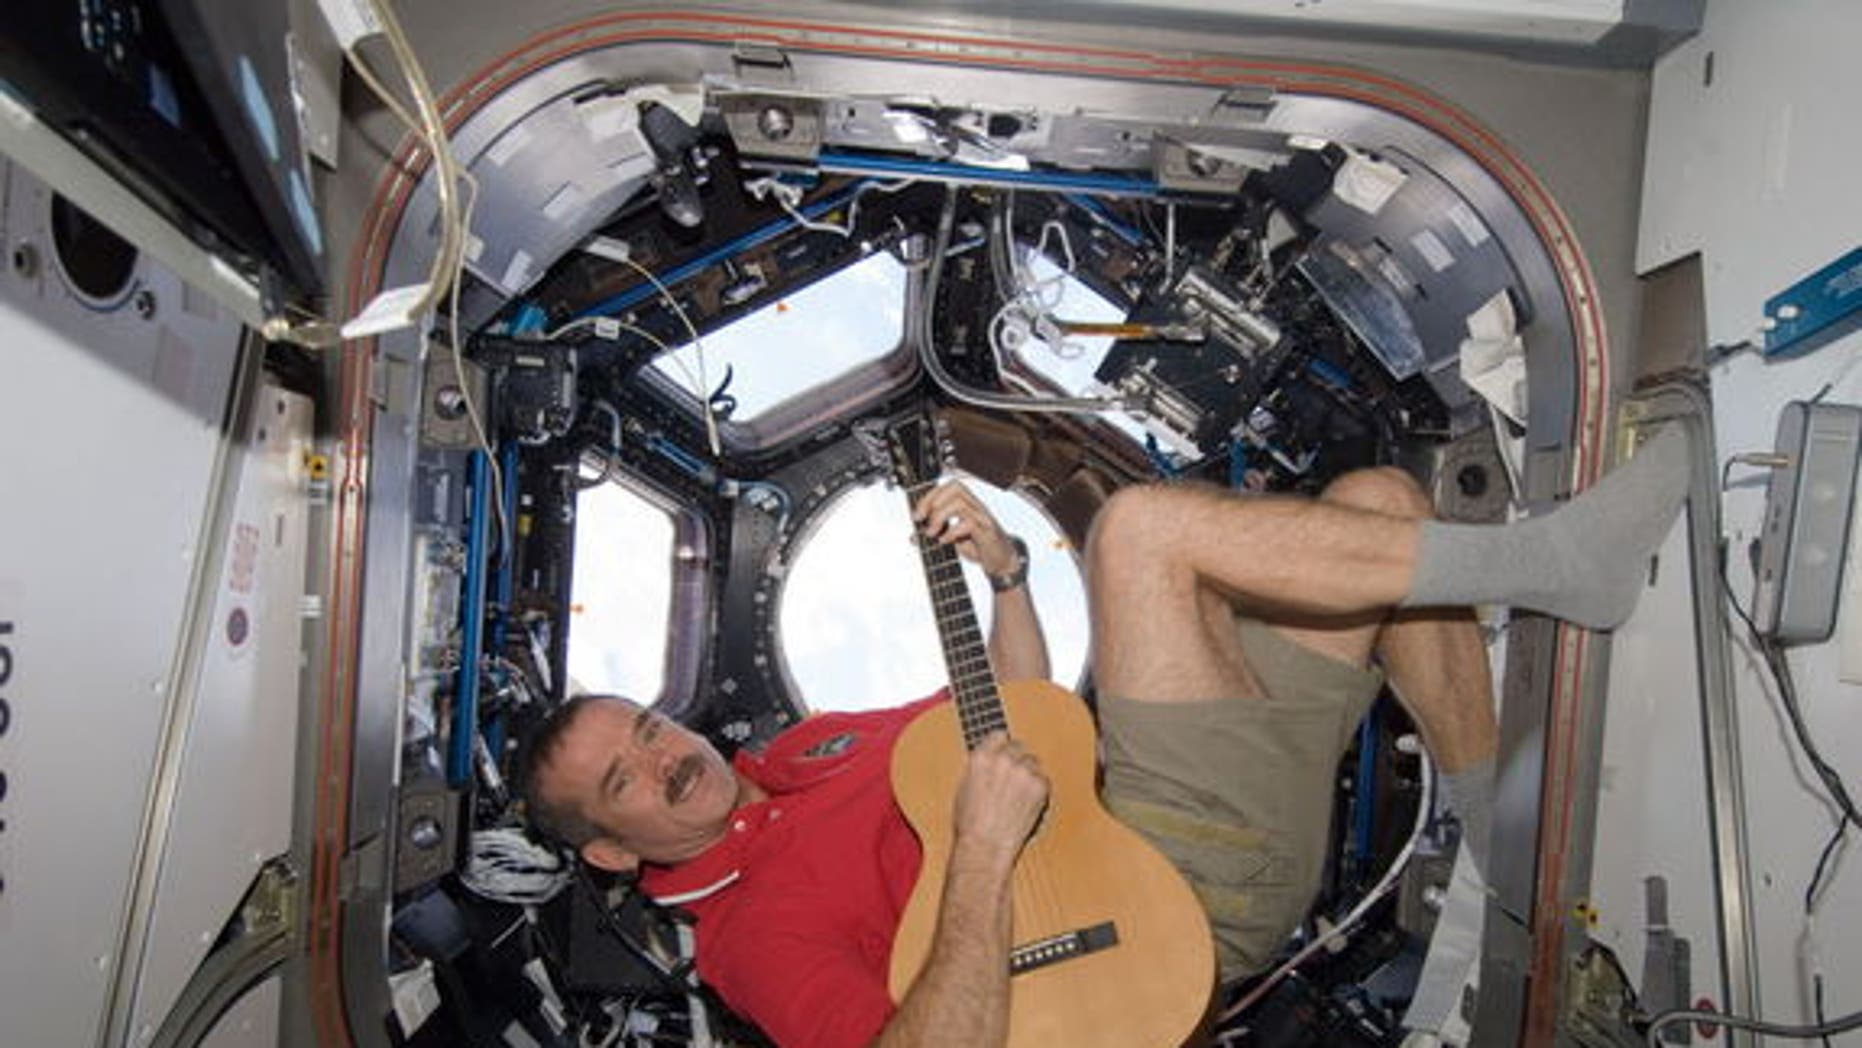 Astronaut Chris Hadfield's tweeting and guitar-strumming from orbit make him a popular draw with worldwide audiences.